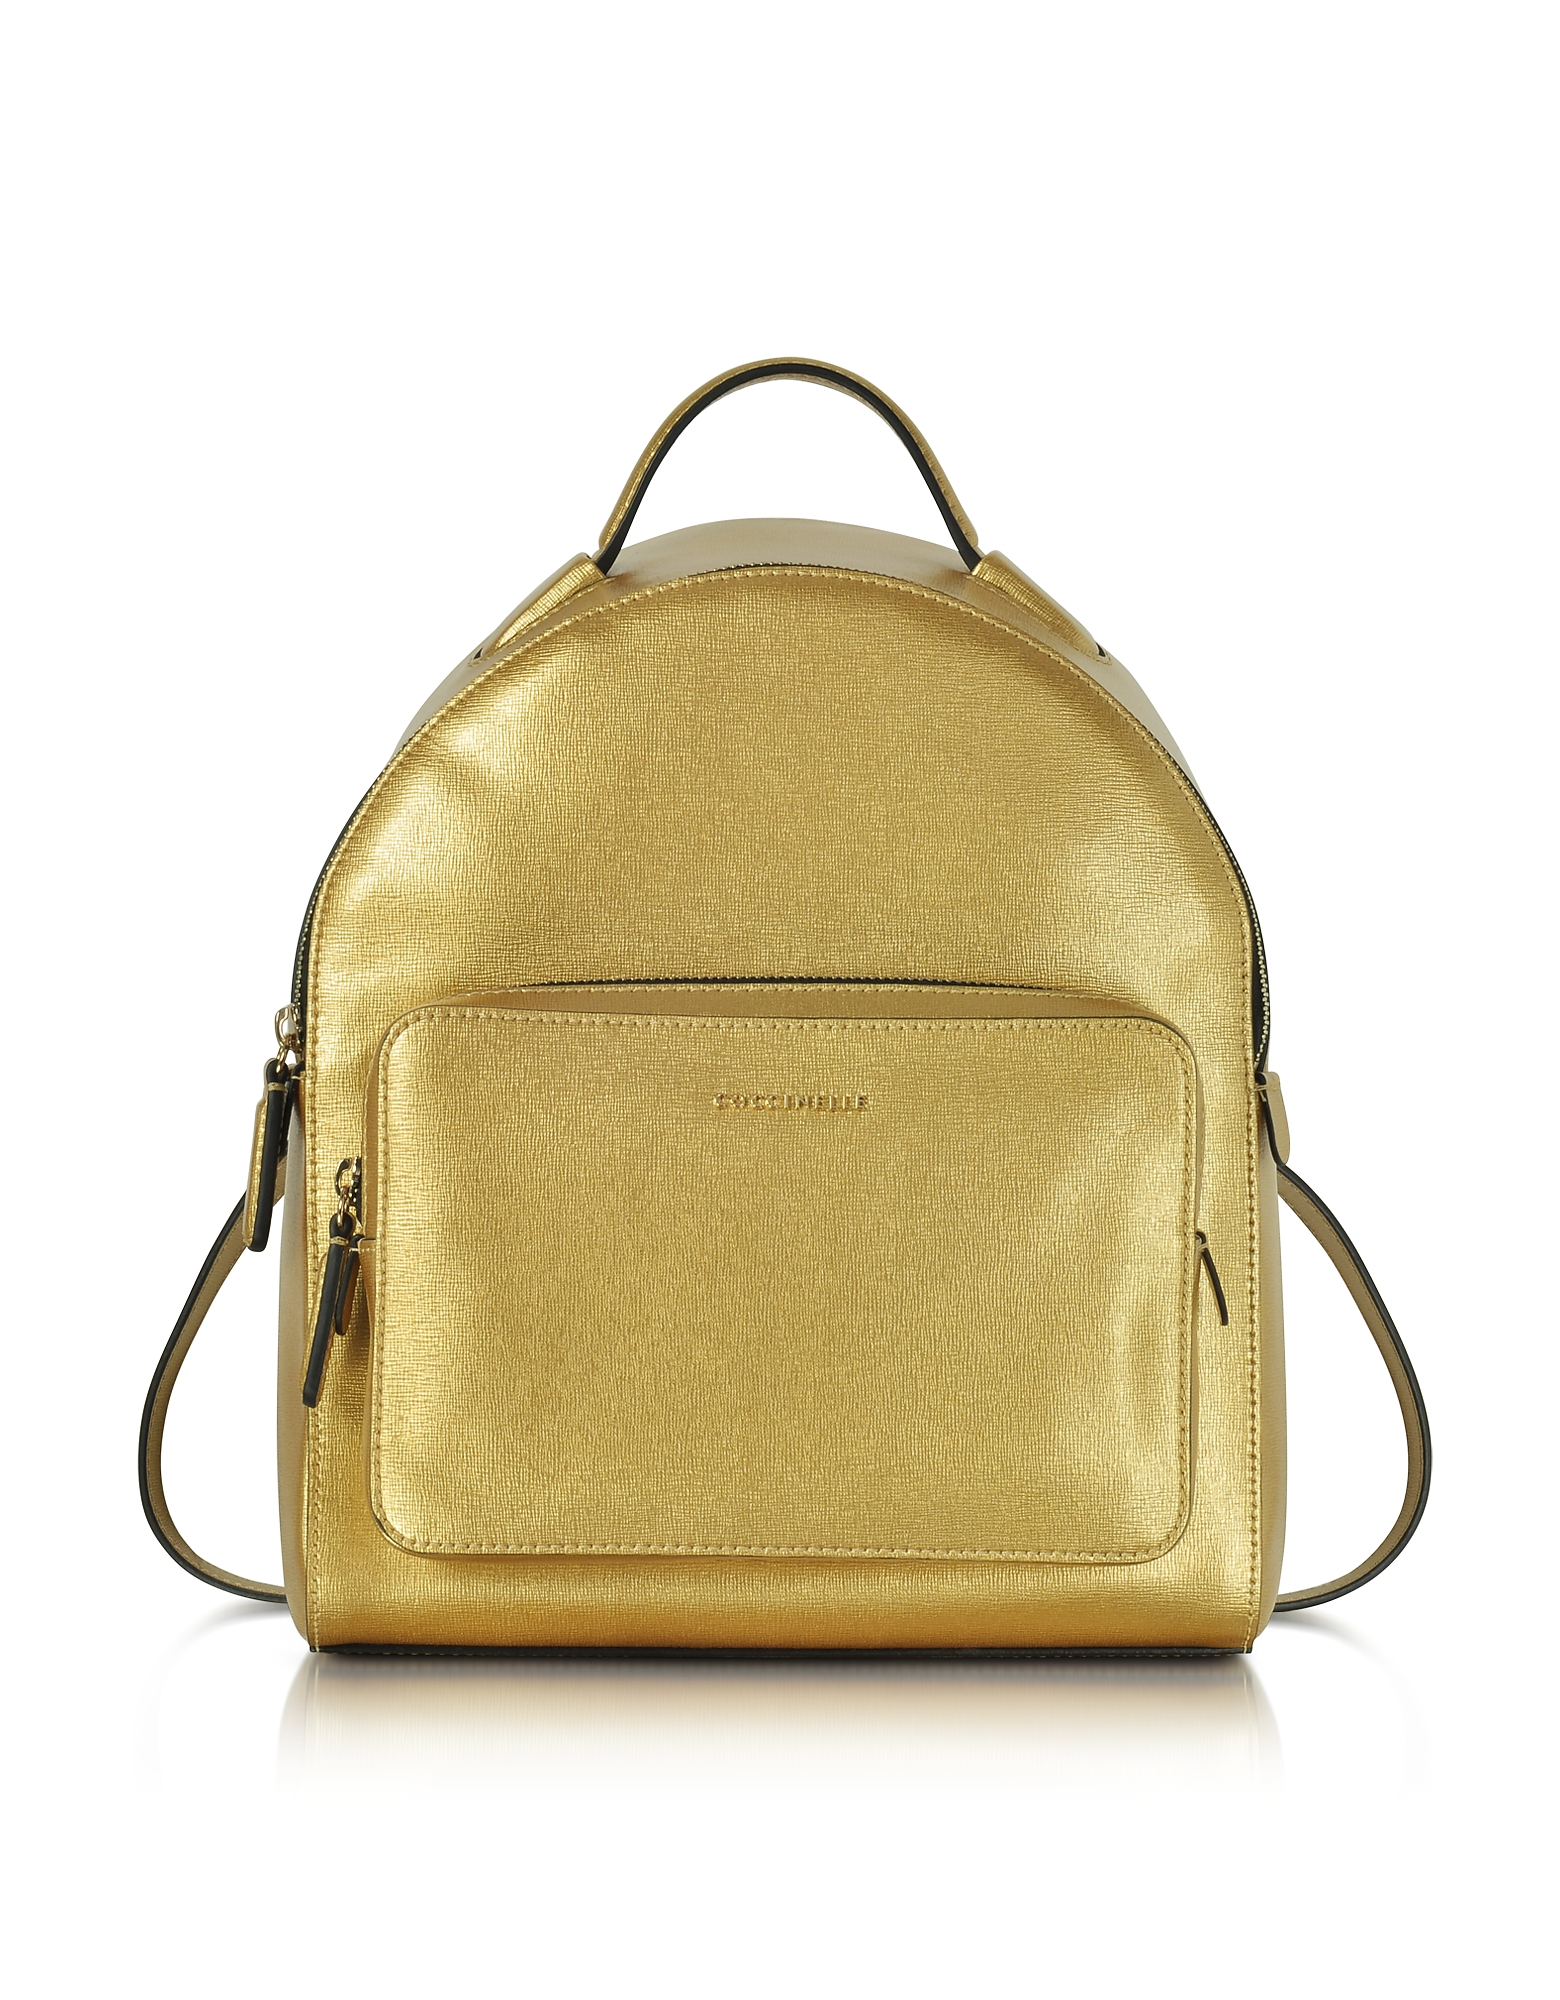 Coccinelle Handbags, Clementine Golden Saffiano Leather Backpack